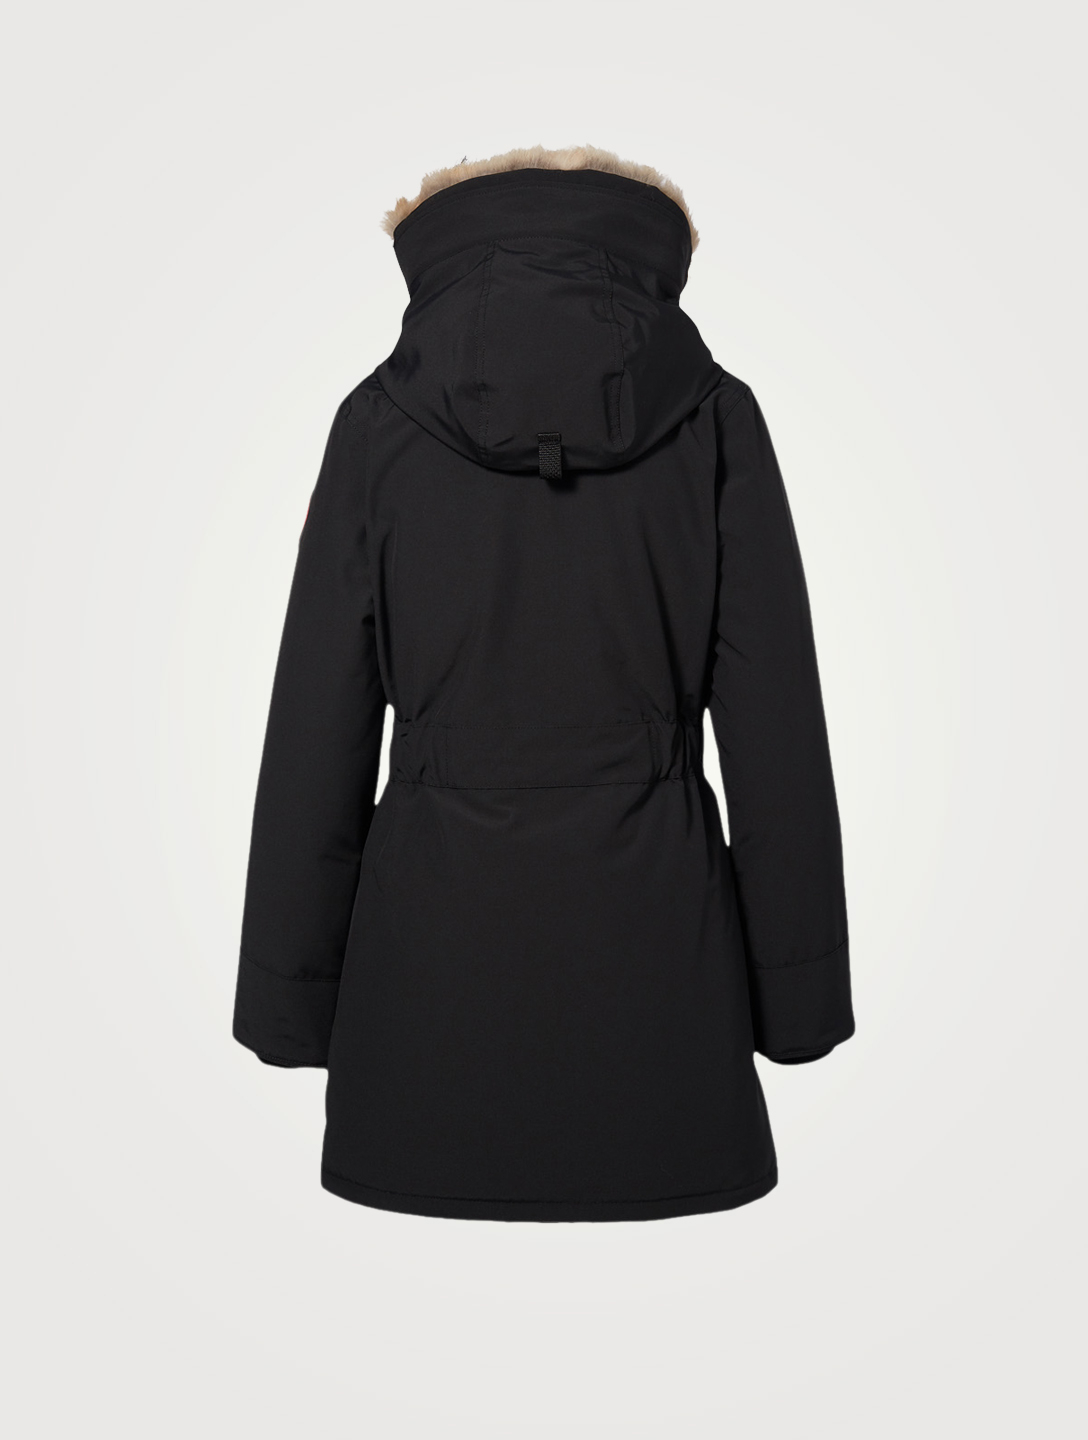 CANADA GOOSE Trillium Down Parka With Fur Hood Women's Black